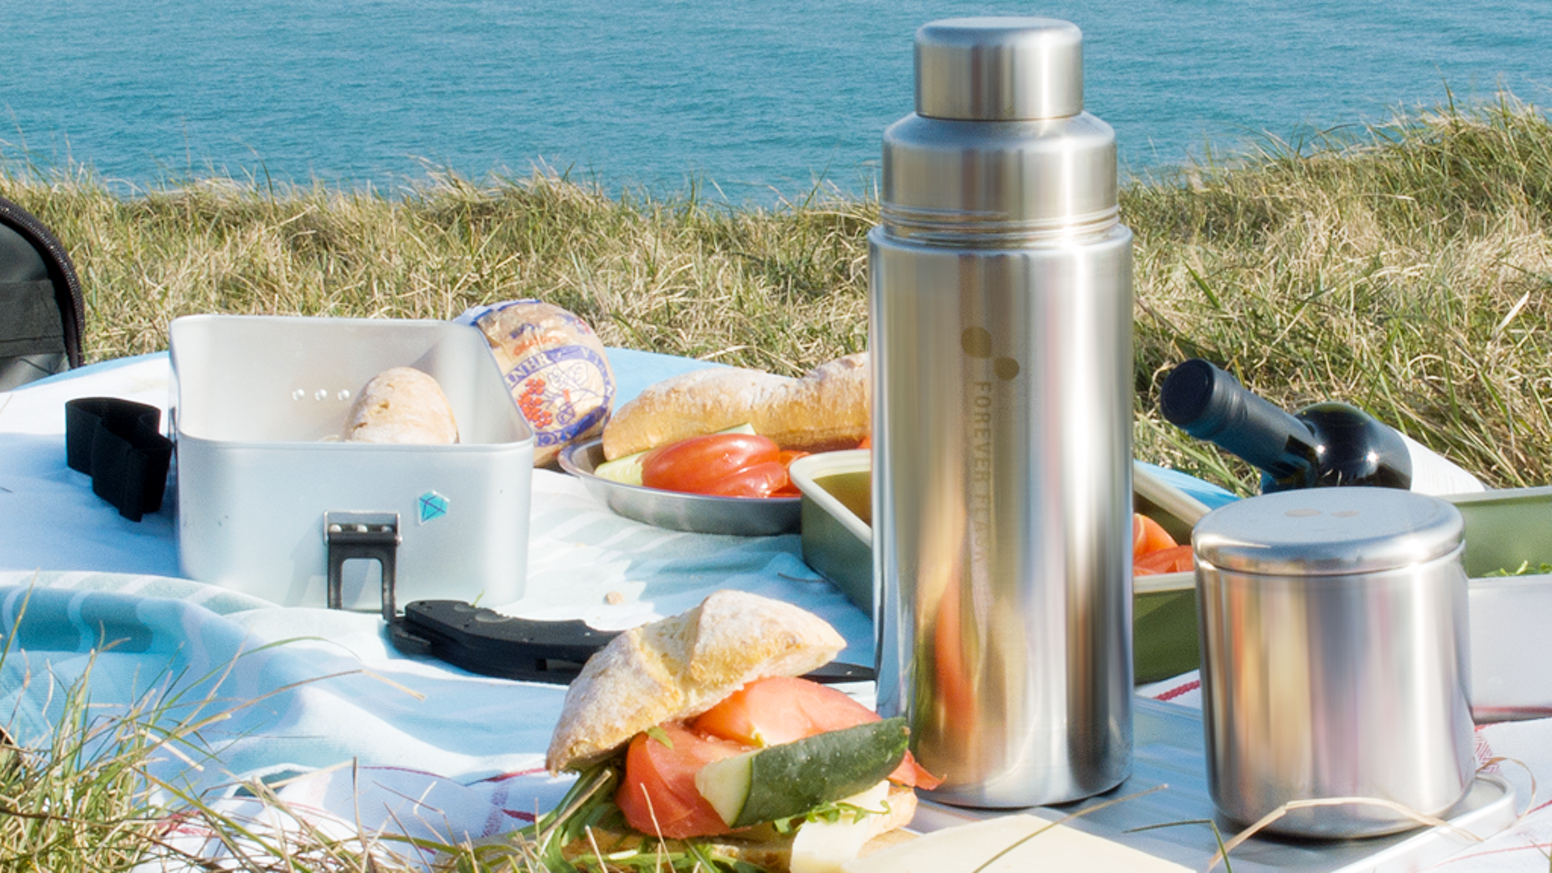 3-in-1 all metal vacuum flask, mug and food container. 100% surgical steel. Hard-wearing. Keeps taste of the content pure.